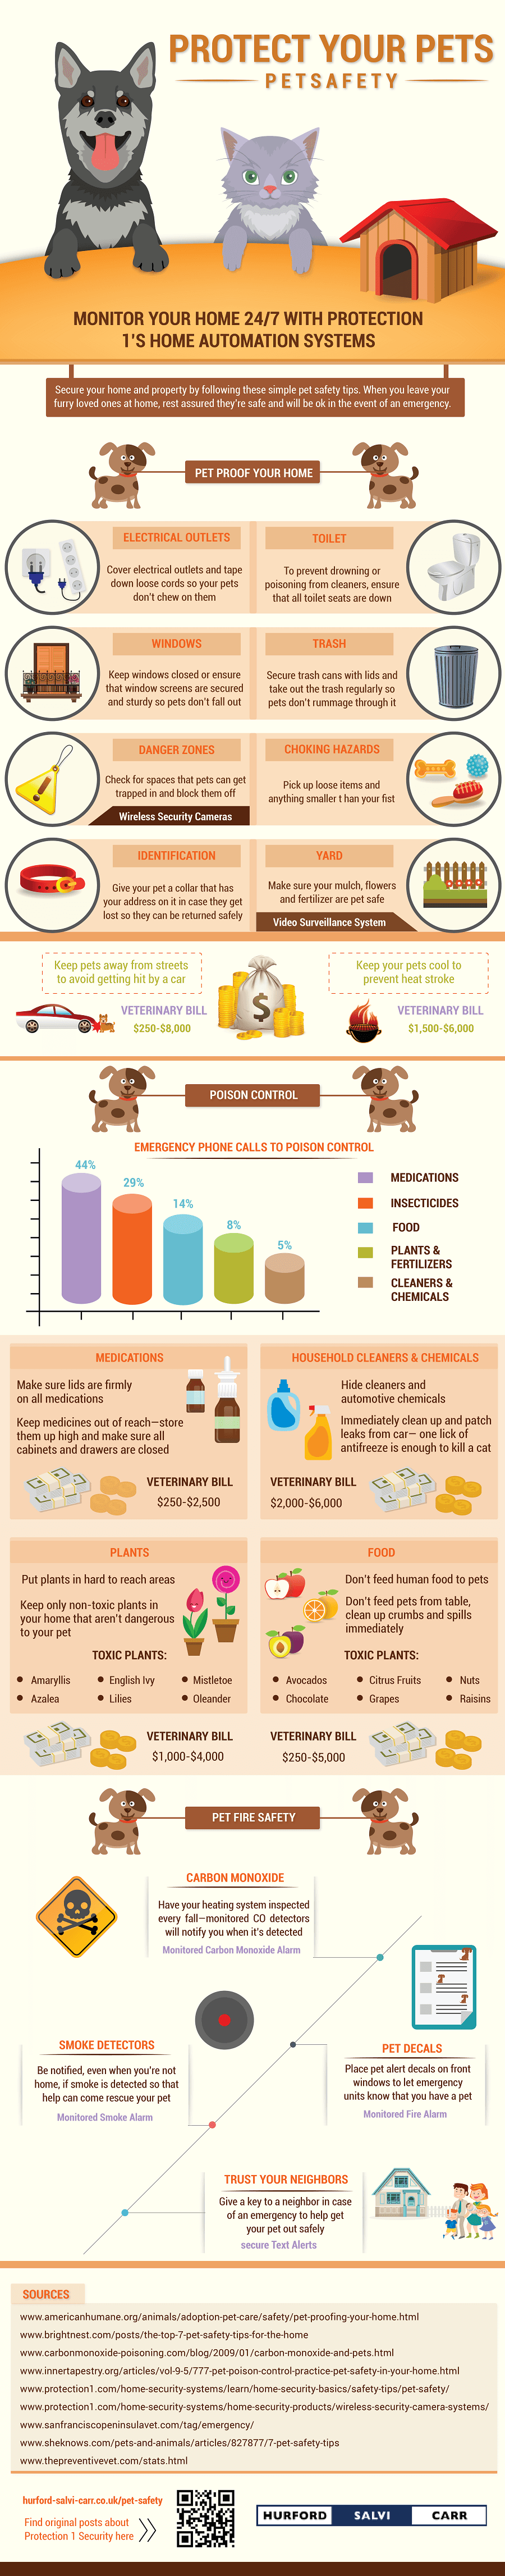 Pet Safety Guide